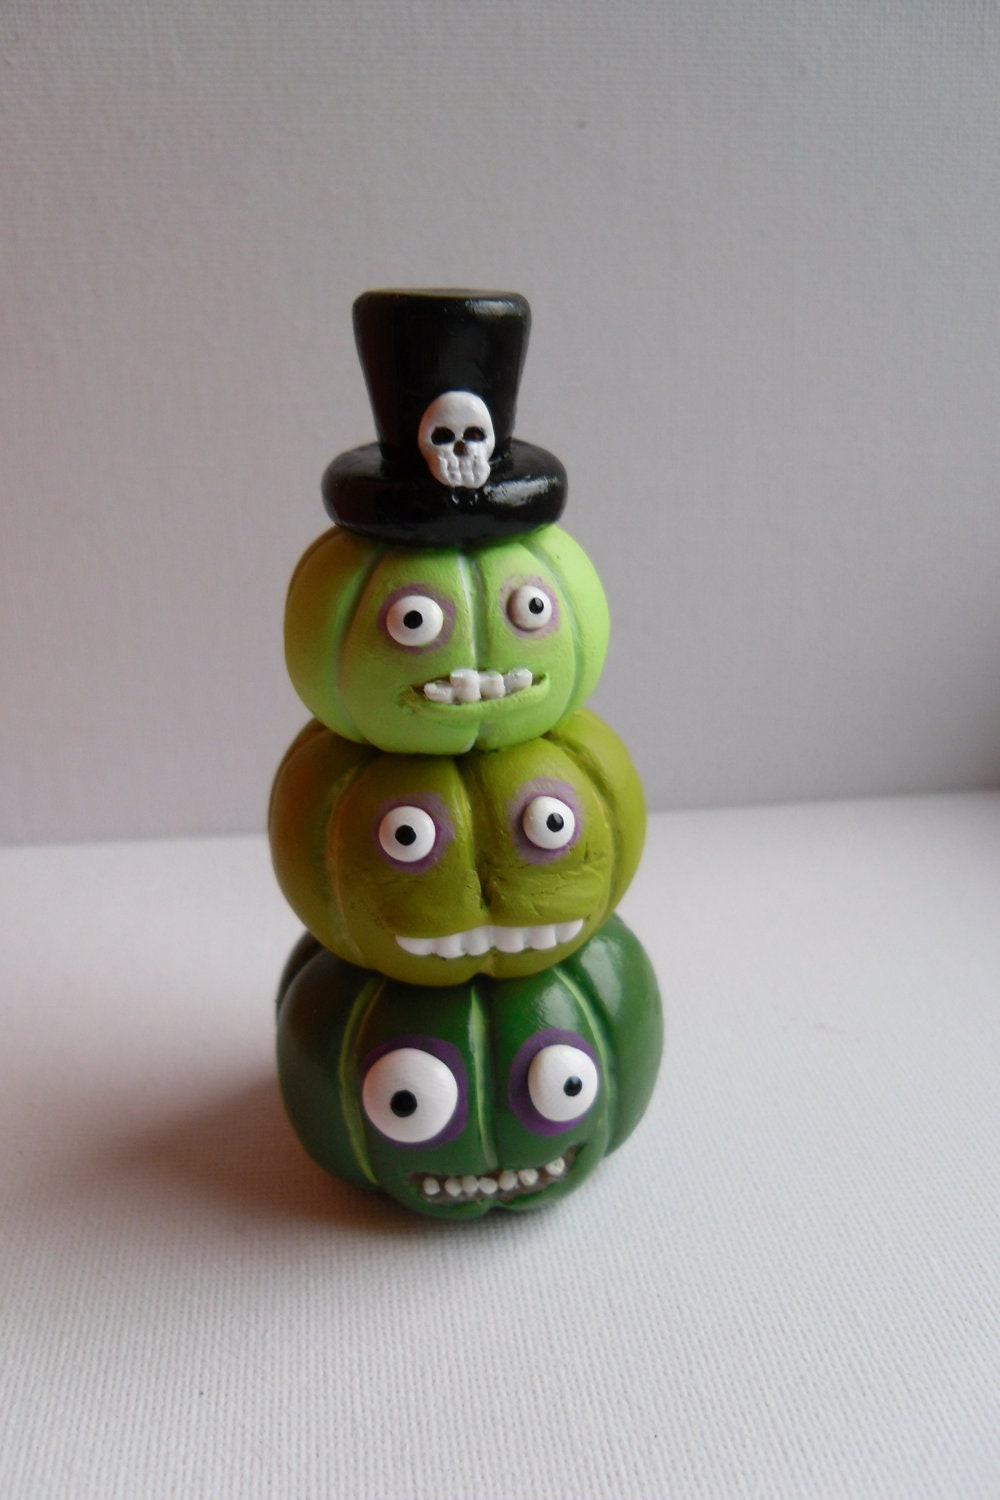 Halloween Pumpkins - The Voodoo Brothers - Stack of Three Green Pumpkins - Clay Sculptures - OOAK - Erinle